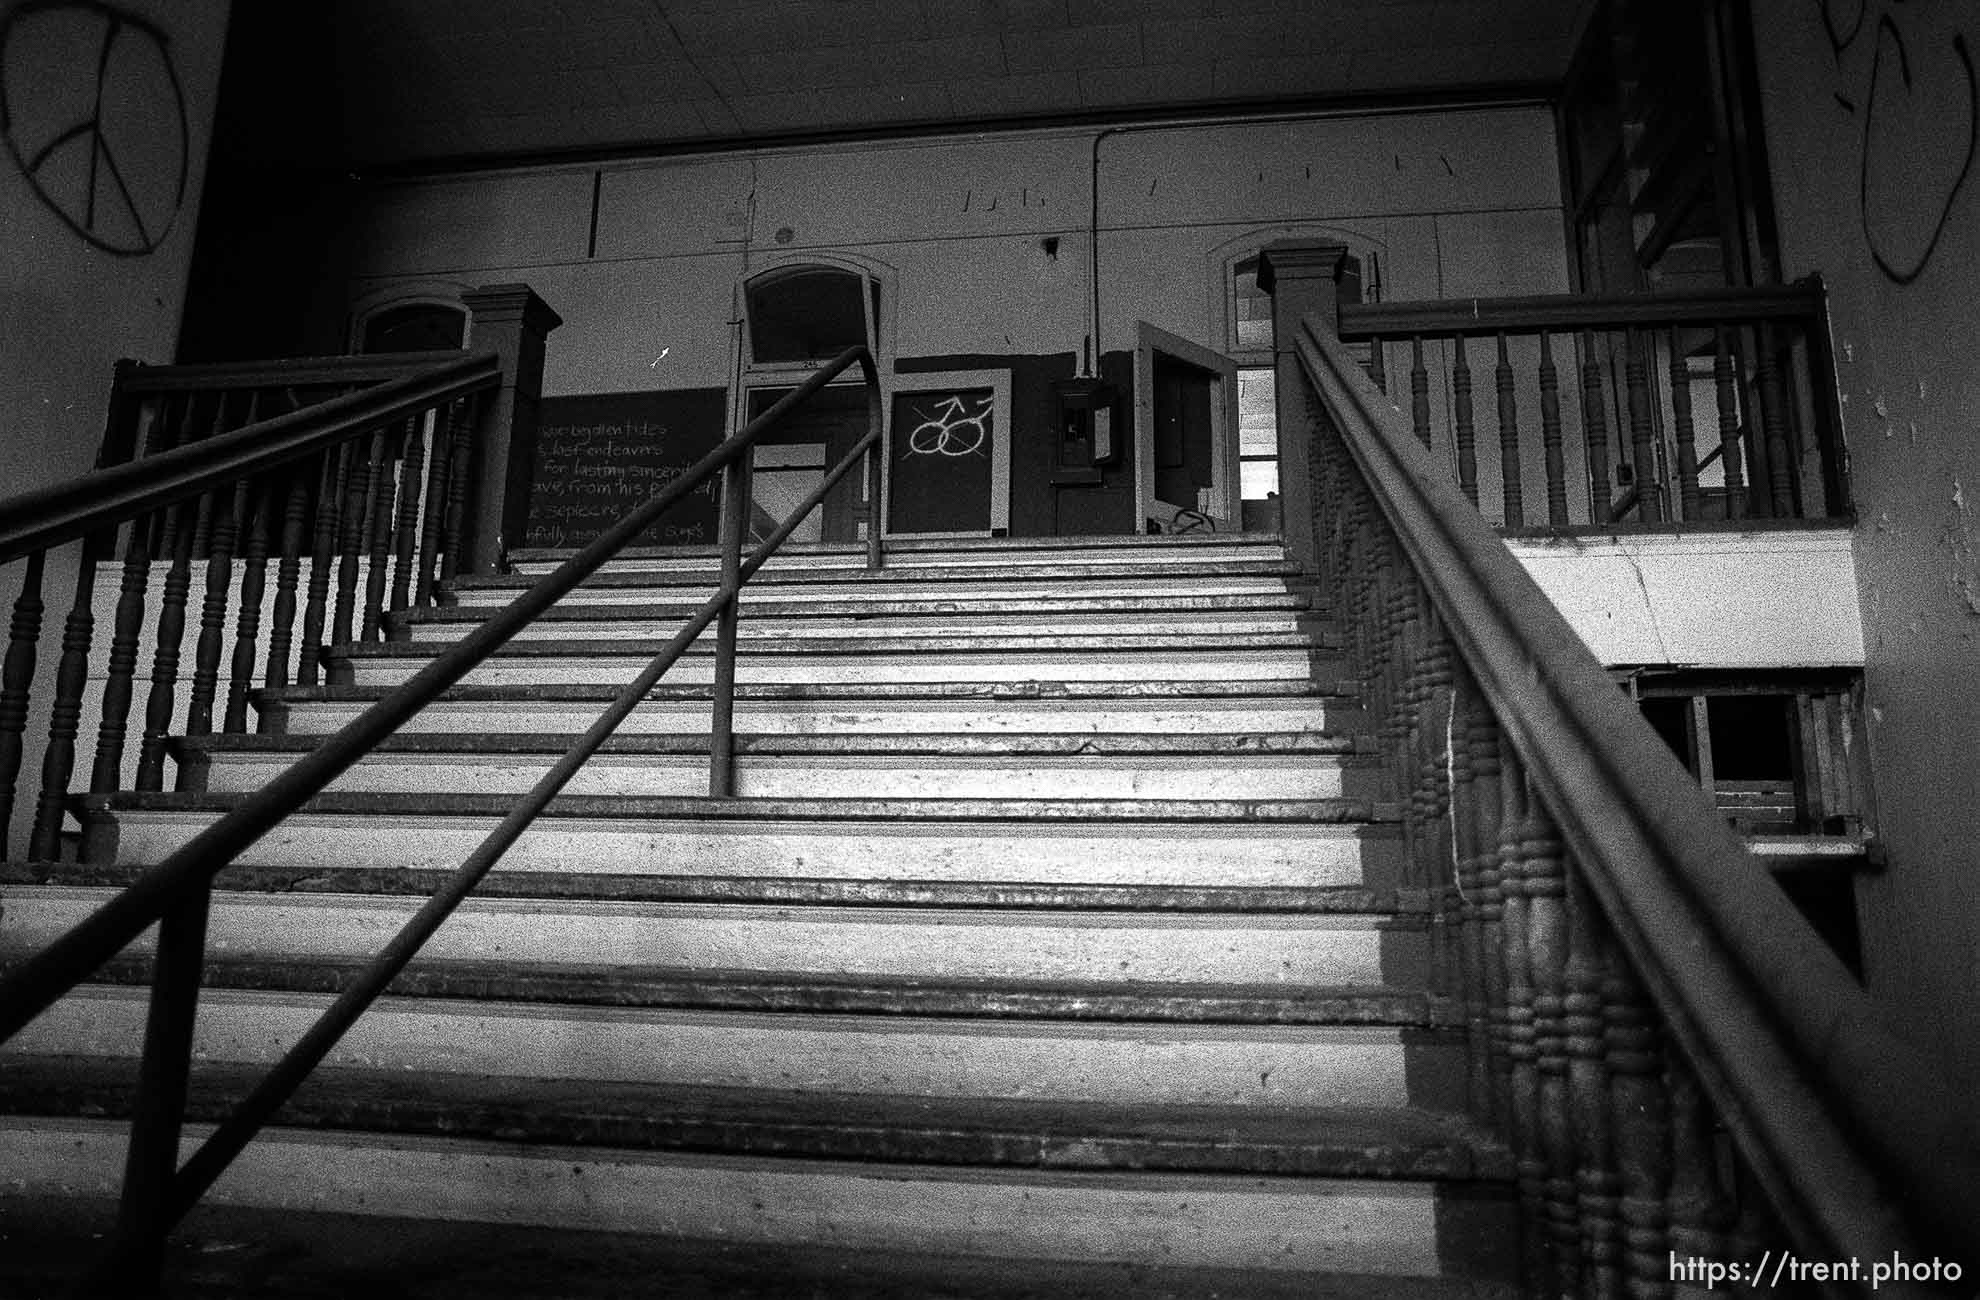 Stairway in the old Academy Building.